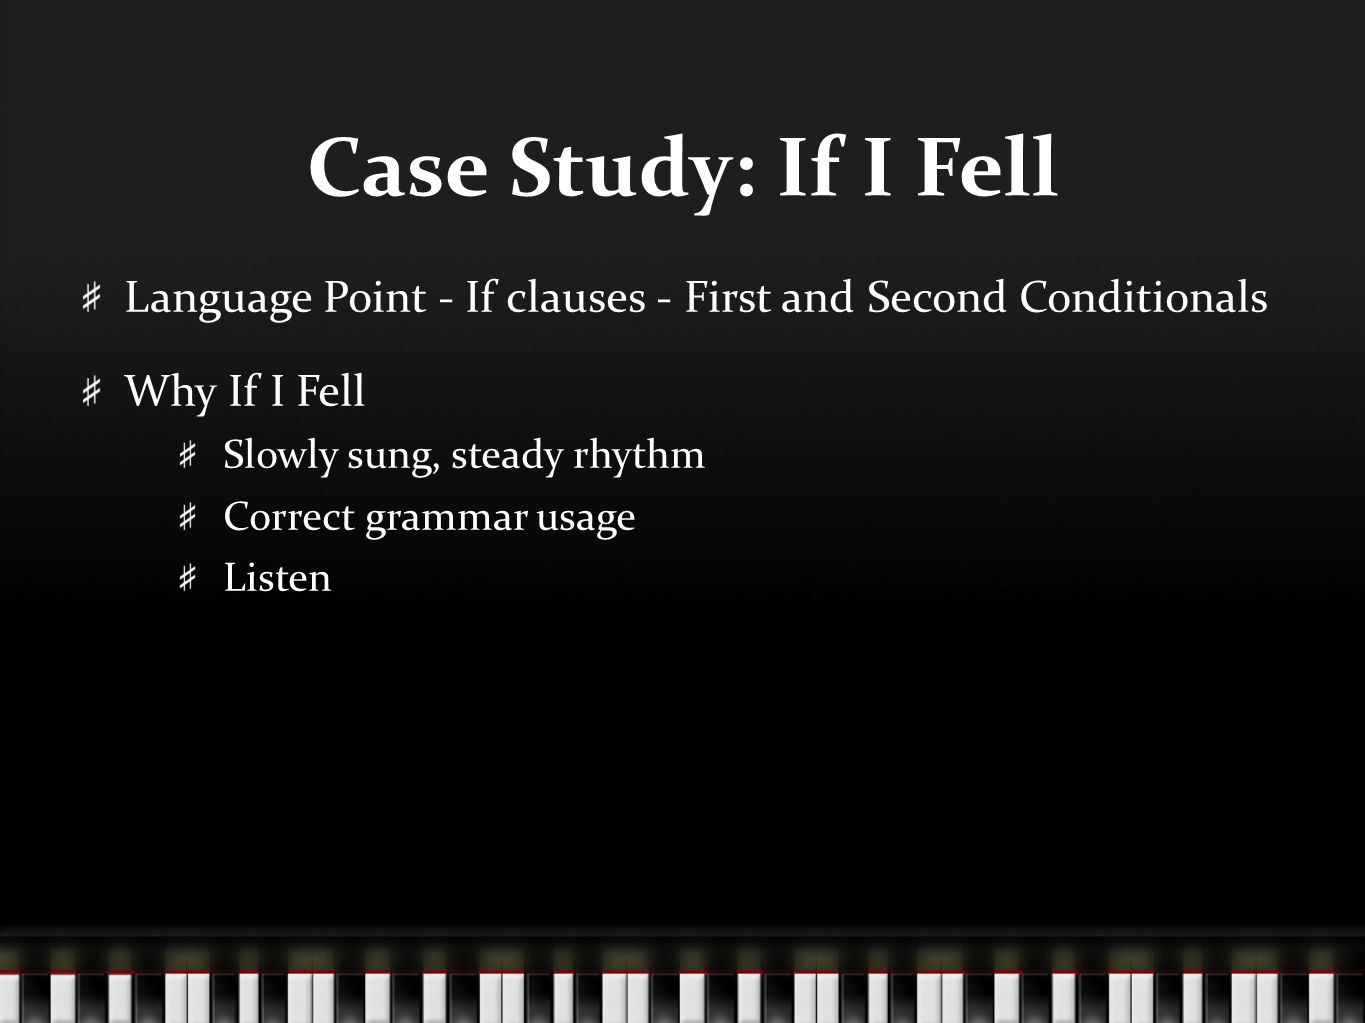 Case Study: If I Fell Language Point - If clauses - First and Second Conditionals Why If I Fell Slowly sung, steady rhythm Correct grammar usage Listen